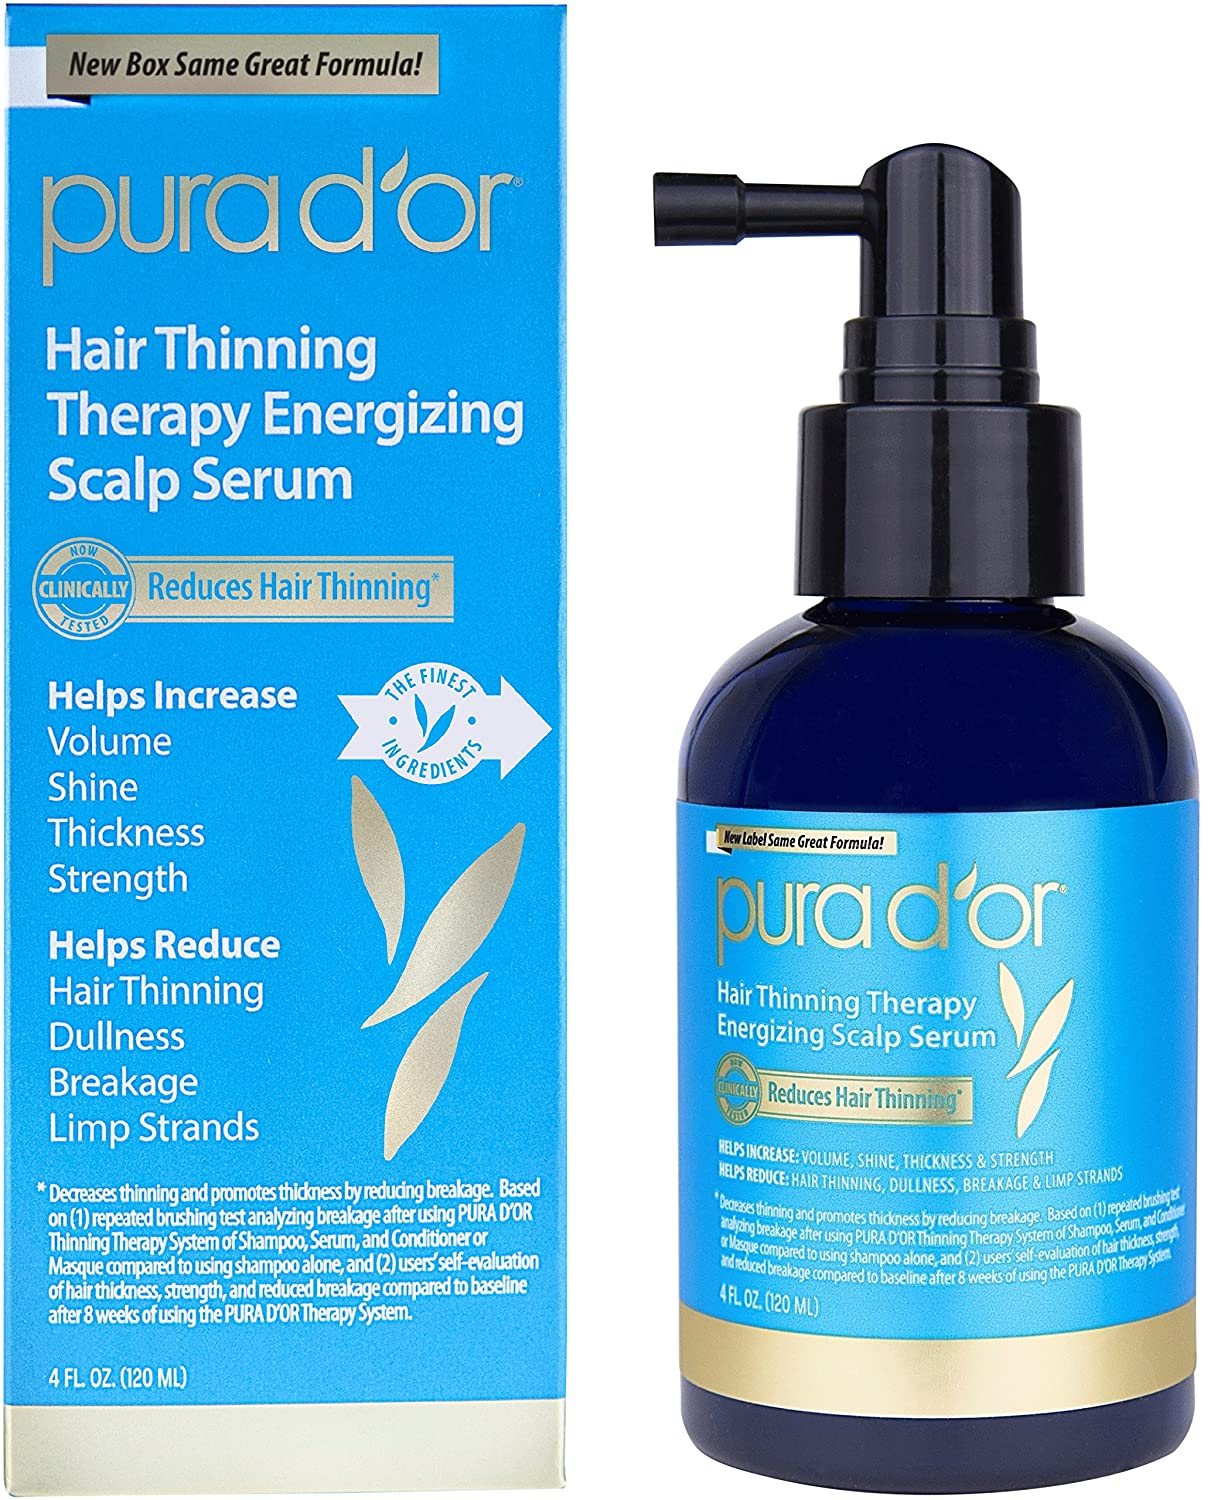 PURA D'OR Hair Loss Prevention Therapy Energizing Scalp Serum, 4 Fluid Ounce PURA D'OR 851615006204